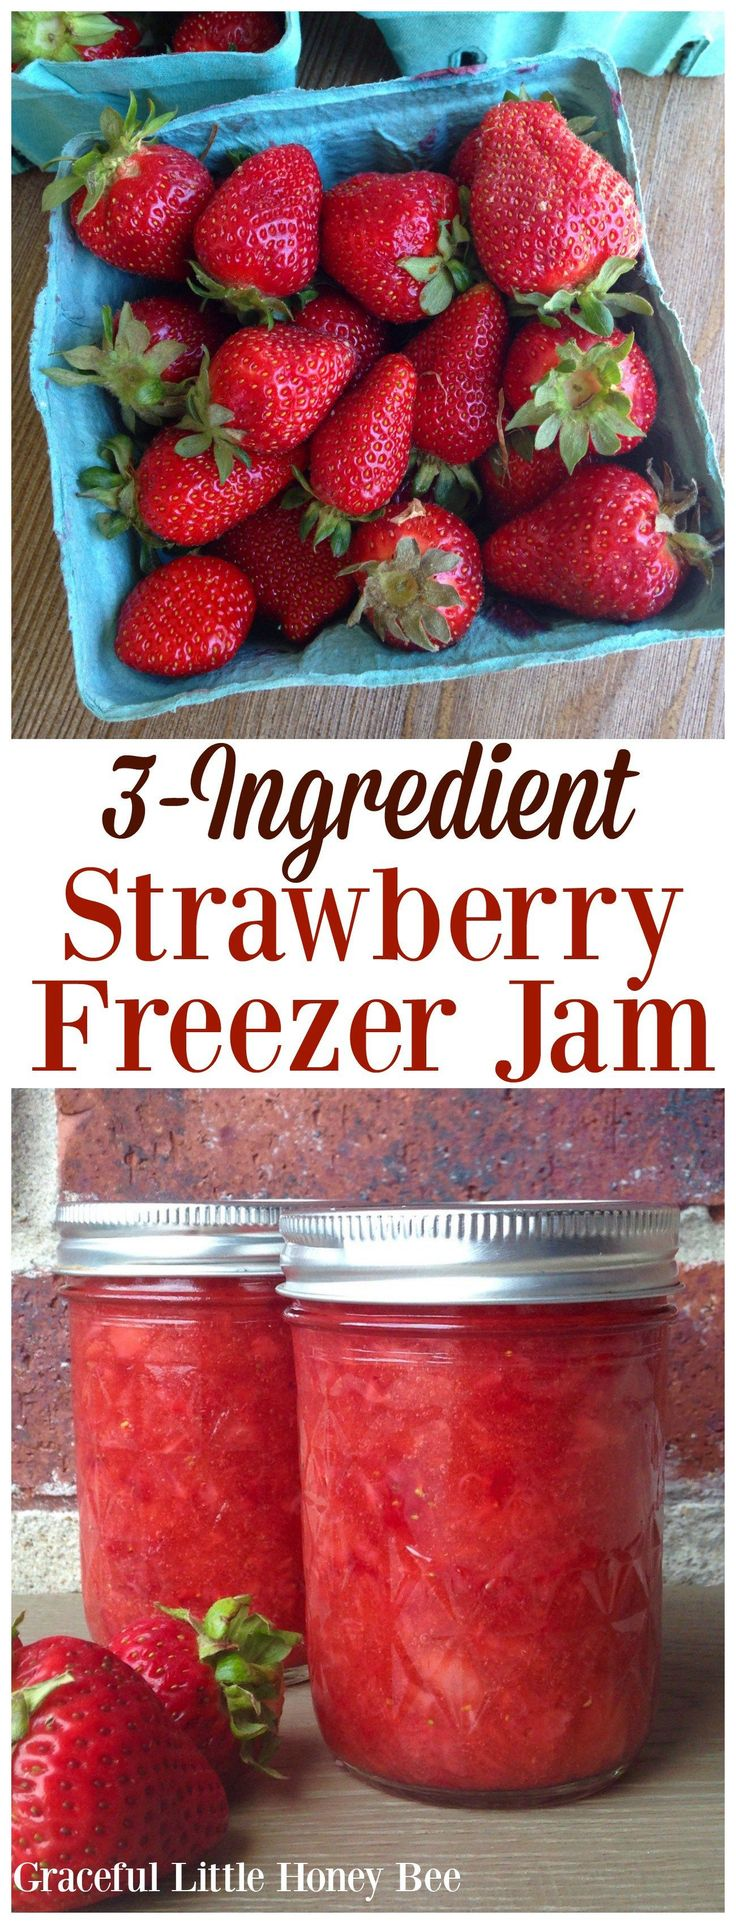 You've got to try this quick and easy 3-Ingredient Strawberry Freezer Jam. It tastes like strawberry shortcake in a jar!